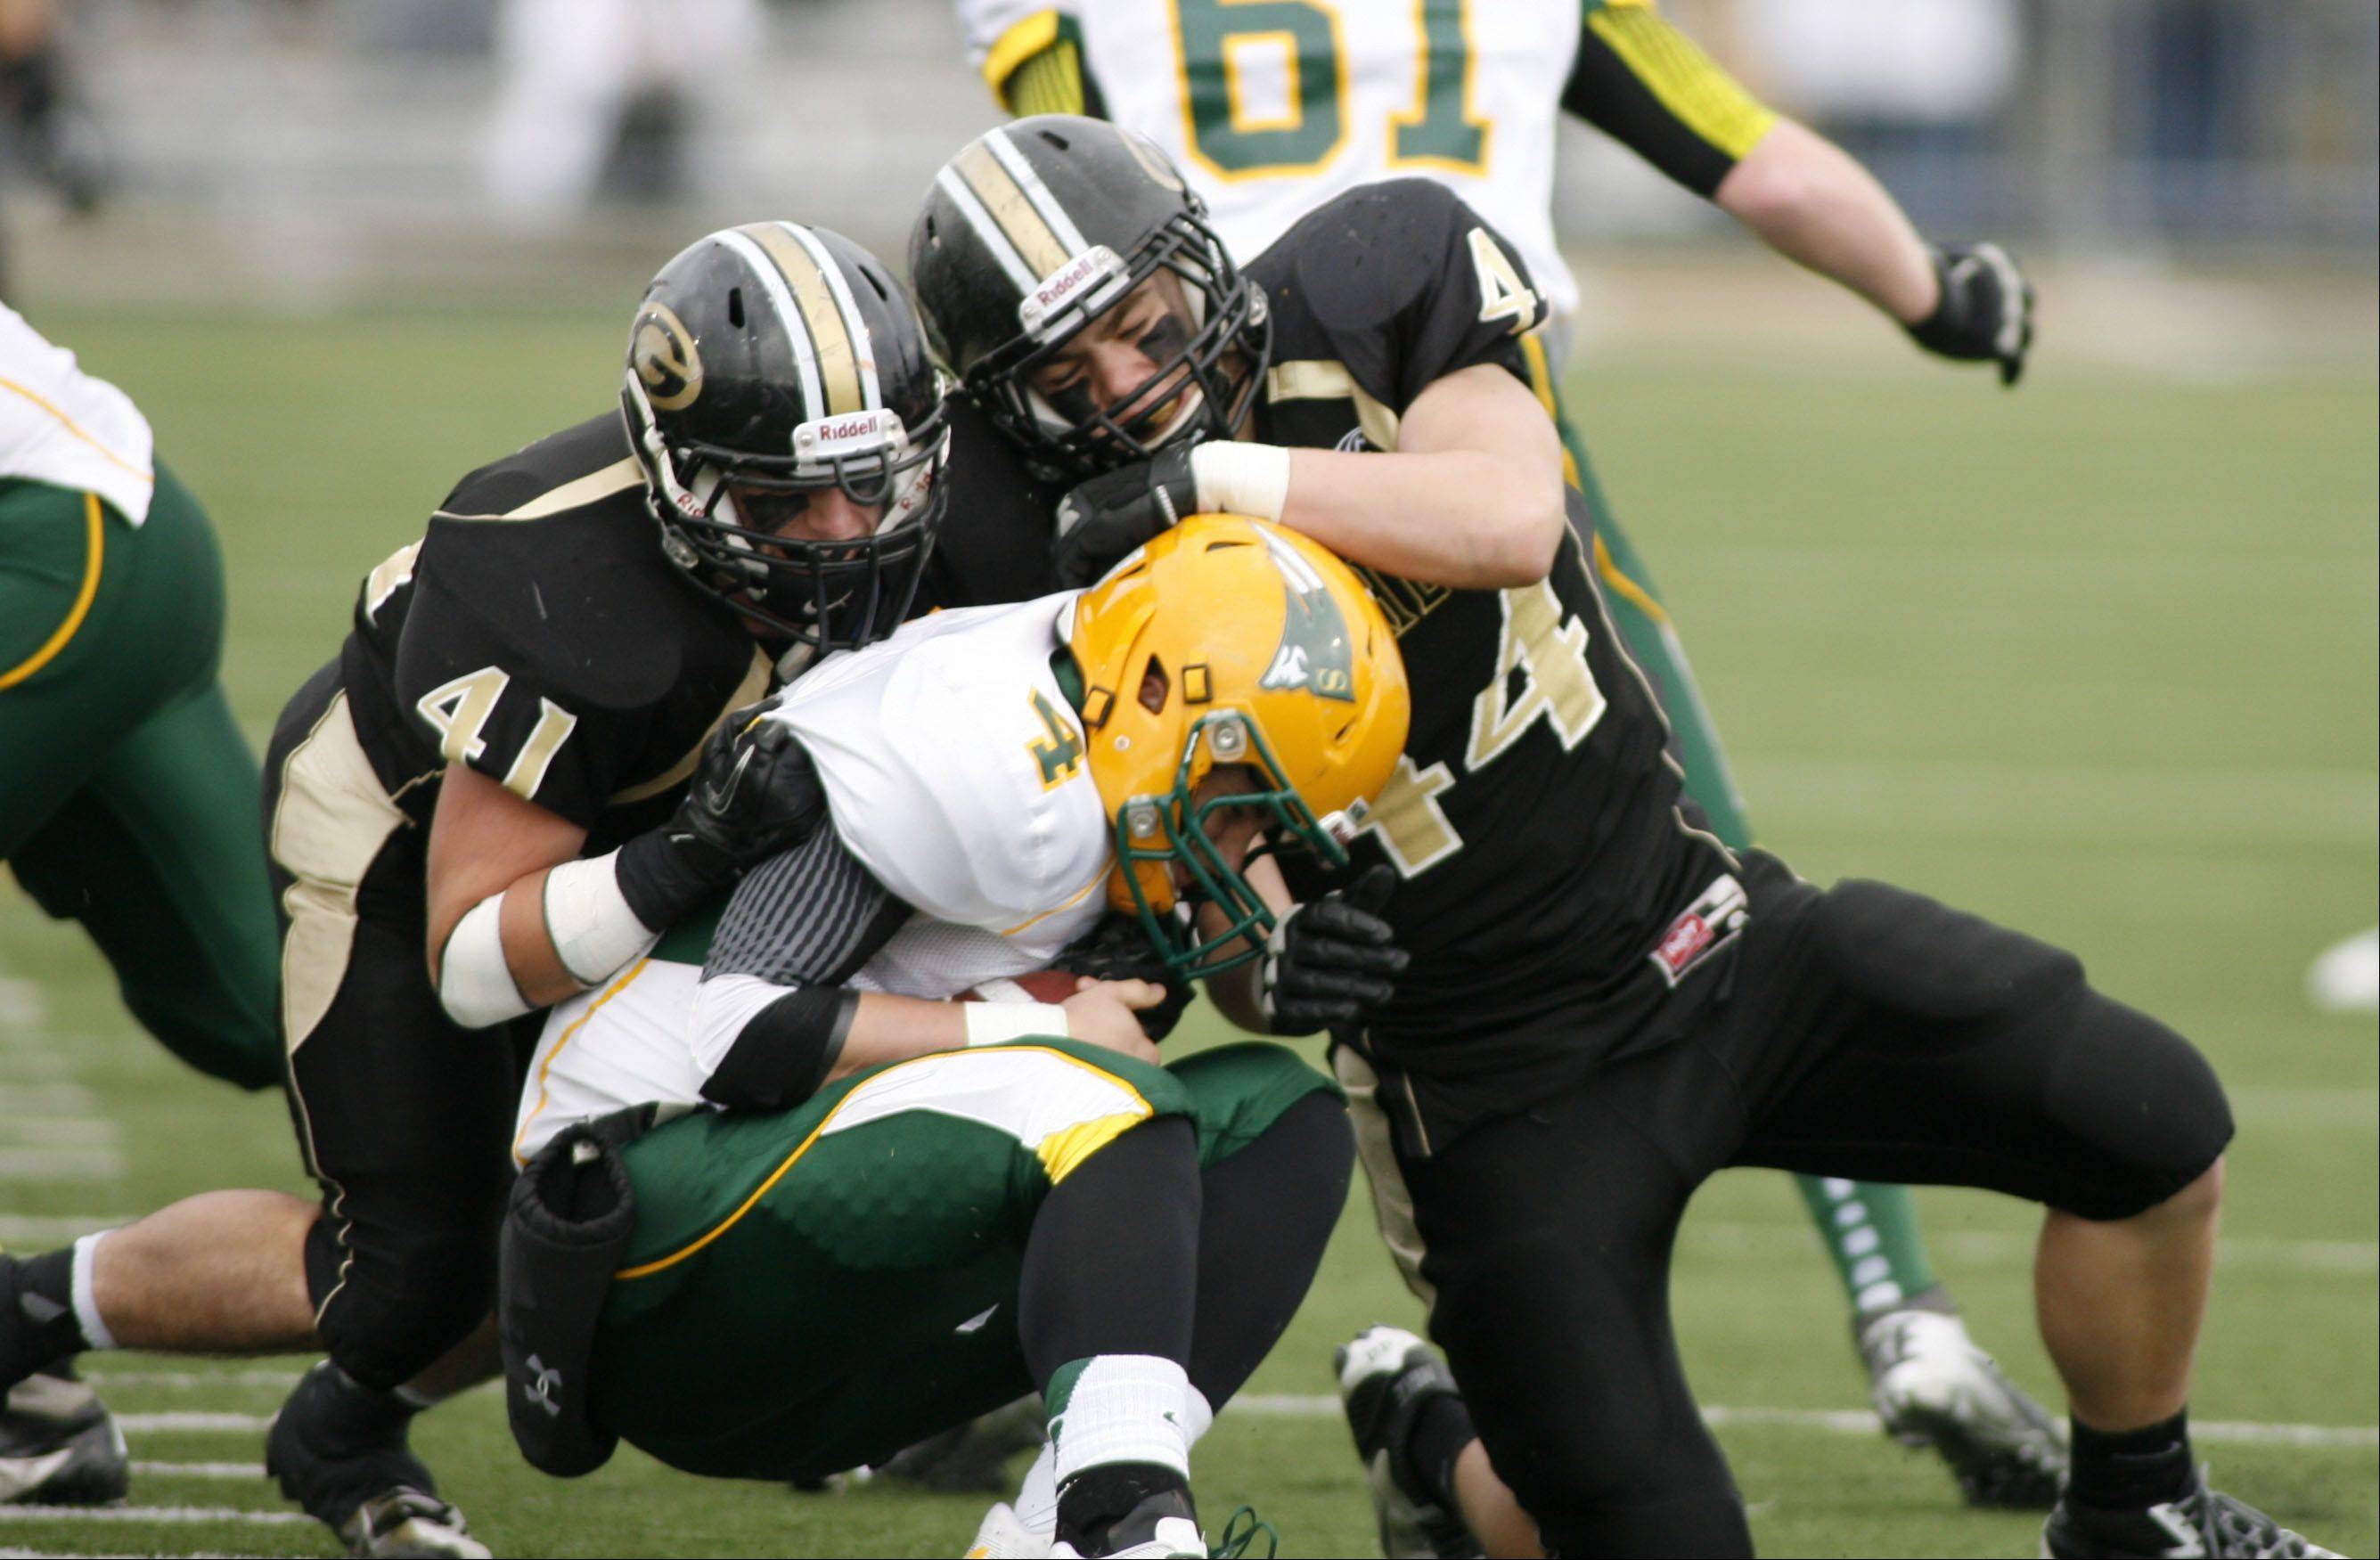 Glenbard North's Dominic Fornino (41) and Andrew Mulshine (44) sack Stevenson quarterback Willie Bourbon during second-round Class 8A playoff action Saturday in Carol Stream.